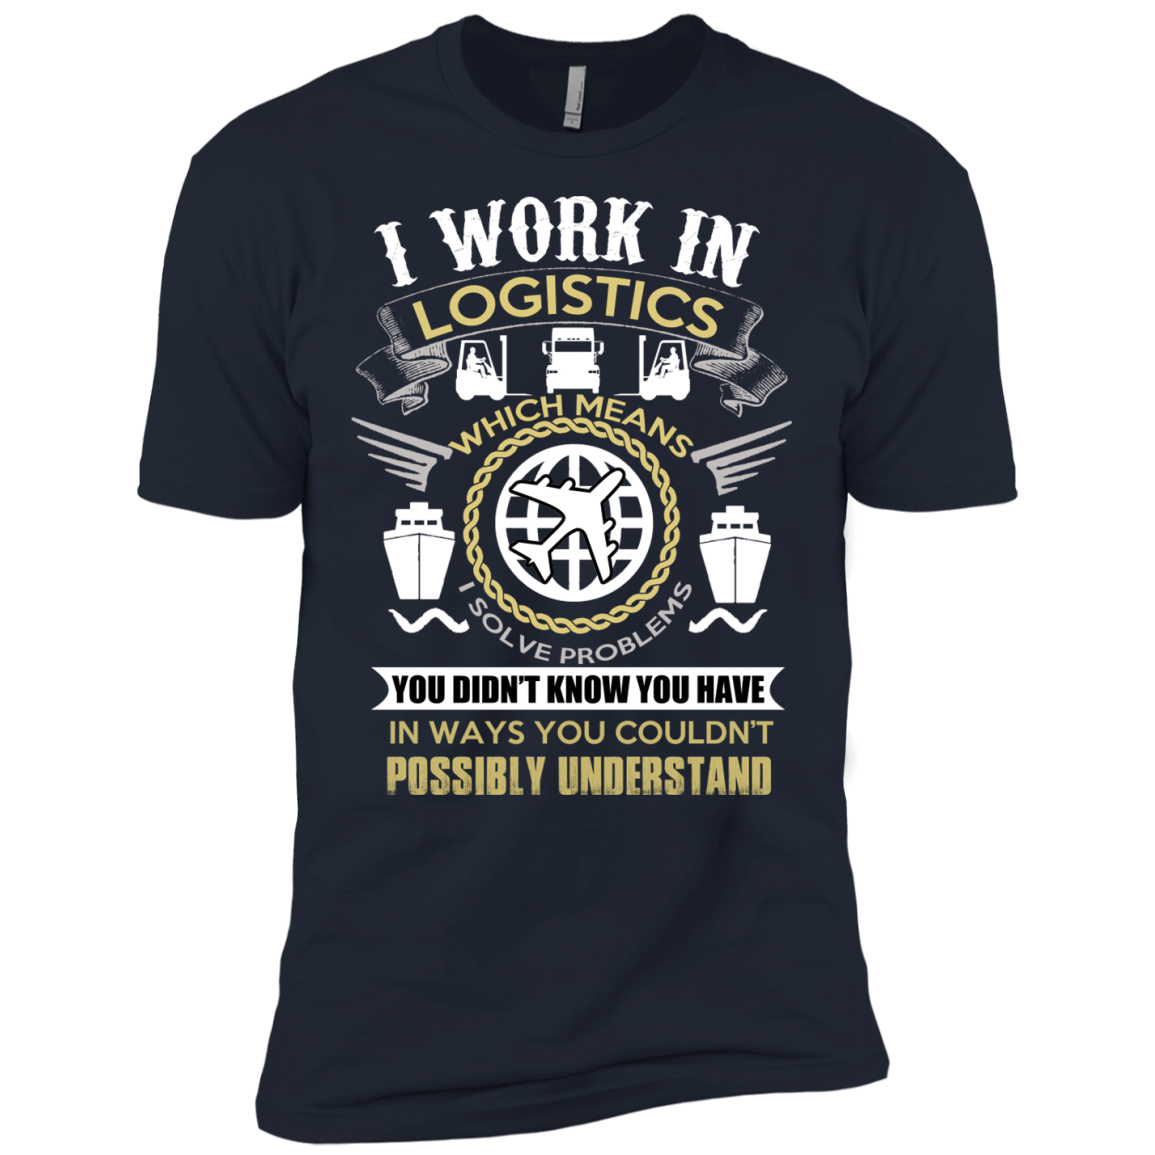 I WORK IN LOGISTICS. MY JOB IS LOGISTICS T SHIRT - The Sun Cat